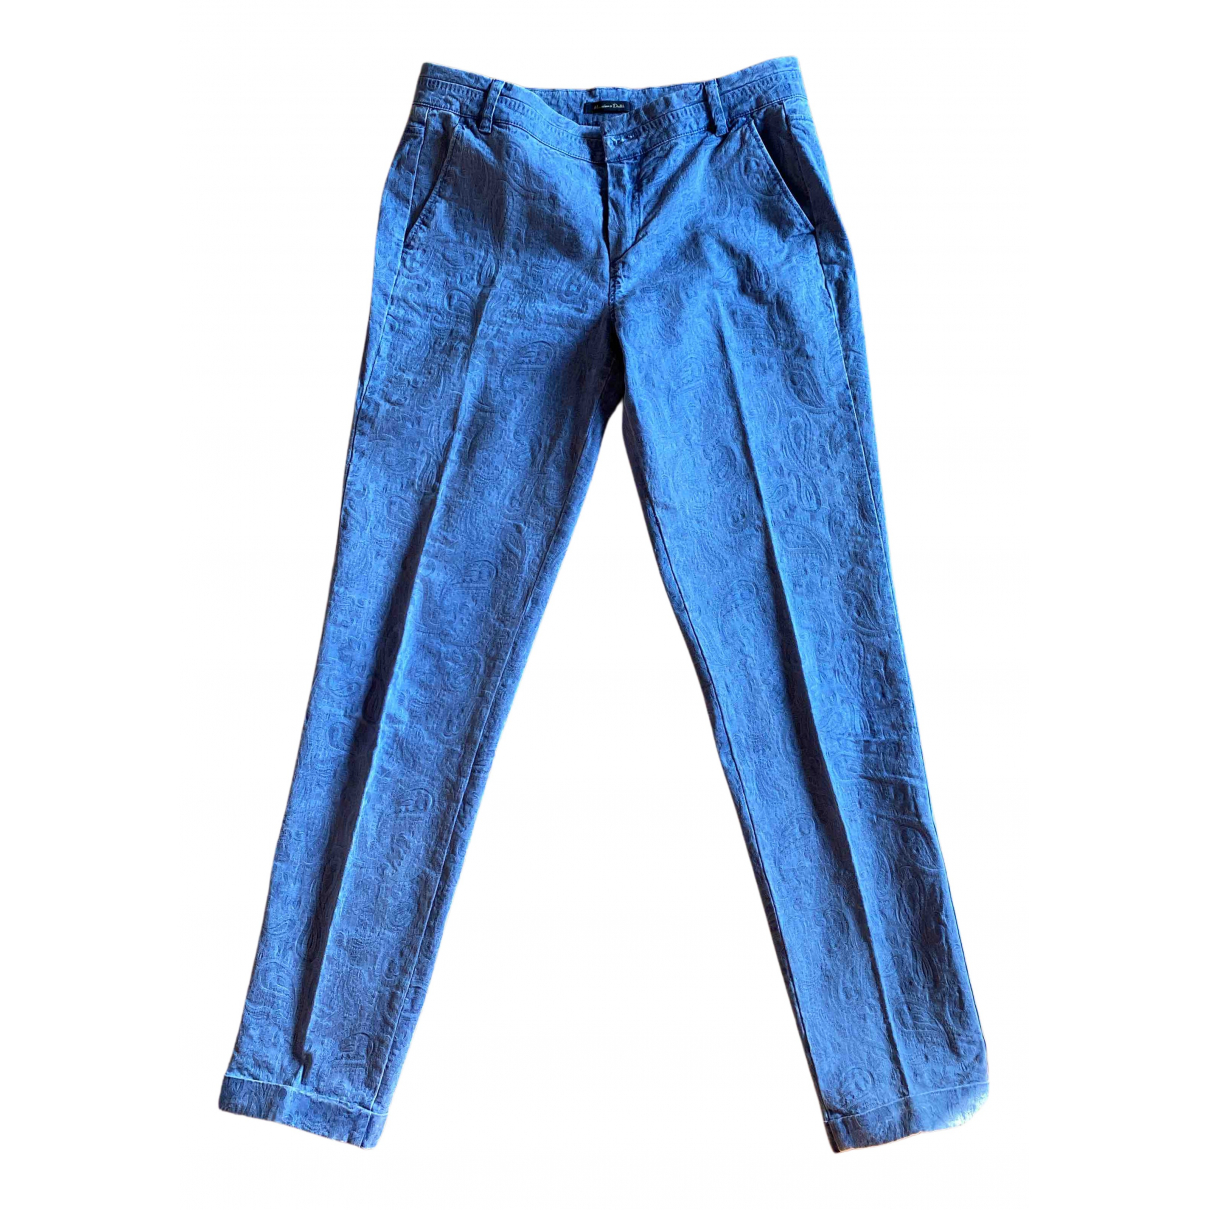 Massimo Dutti N Blue Cotton Trousers for Women 38 FR